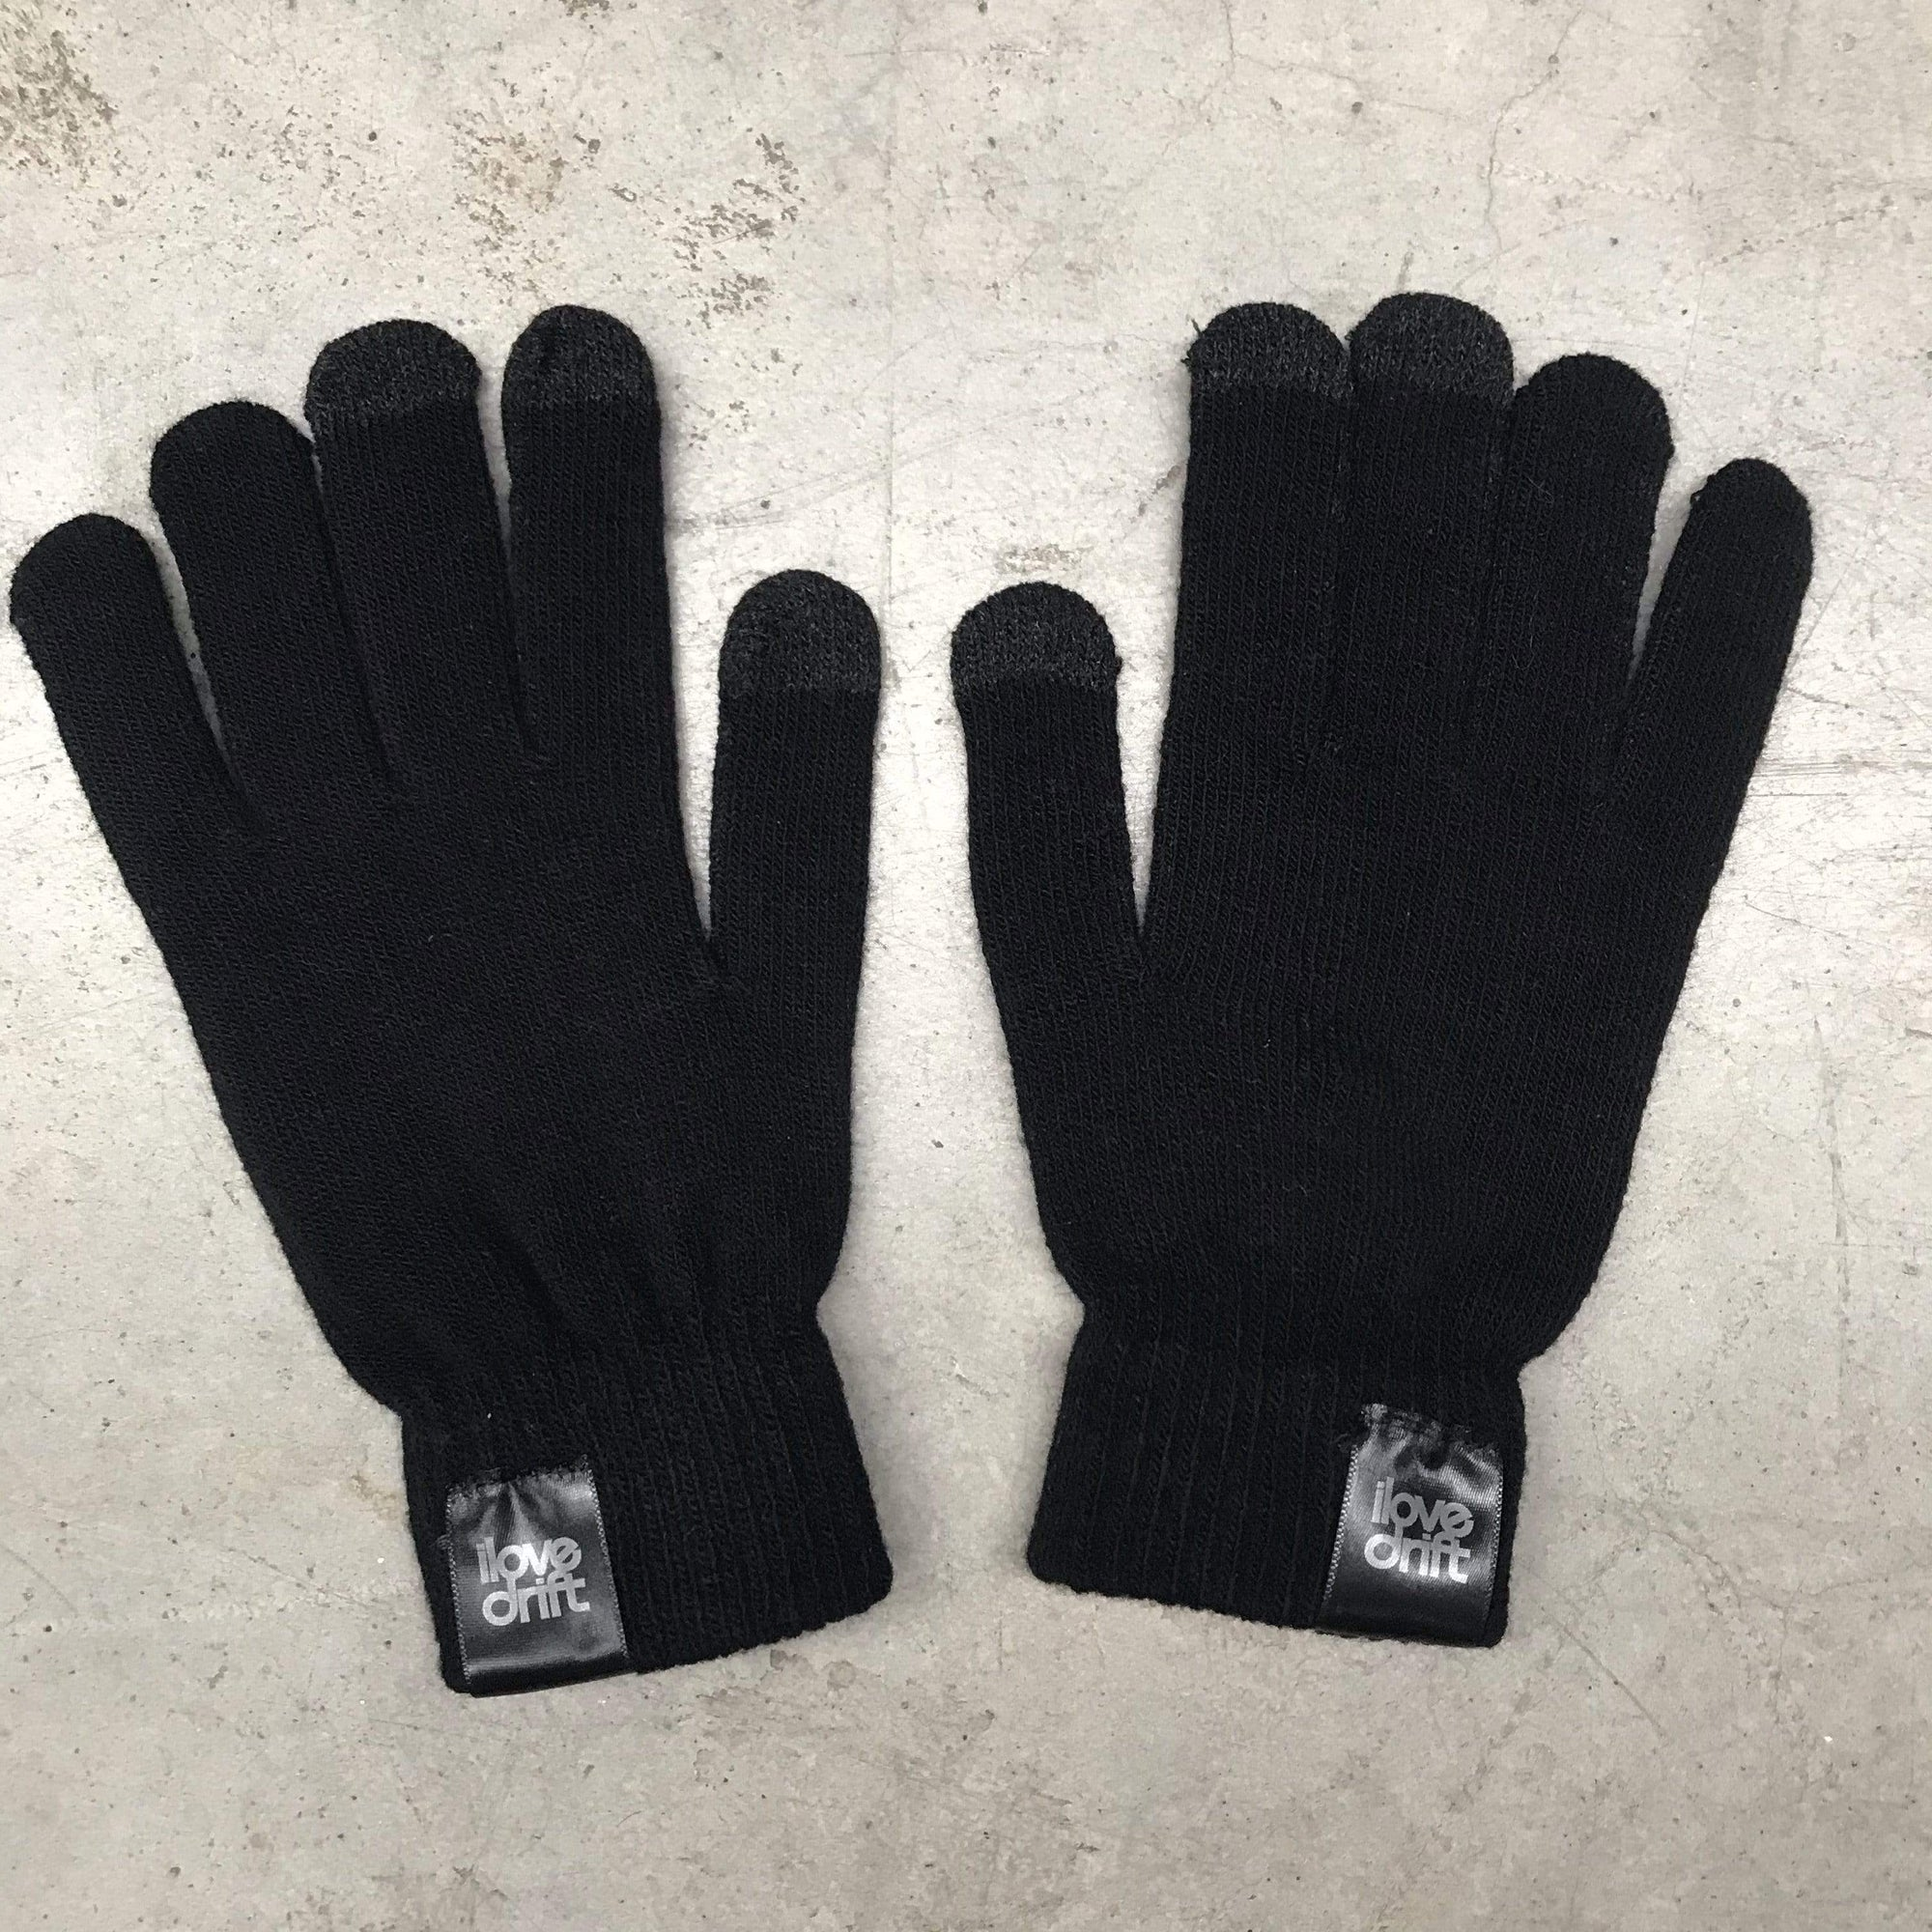 I Love Drift Clothing Touchscreen Knitted Gloves